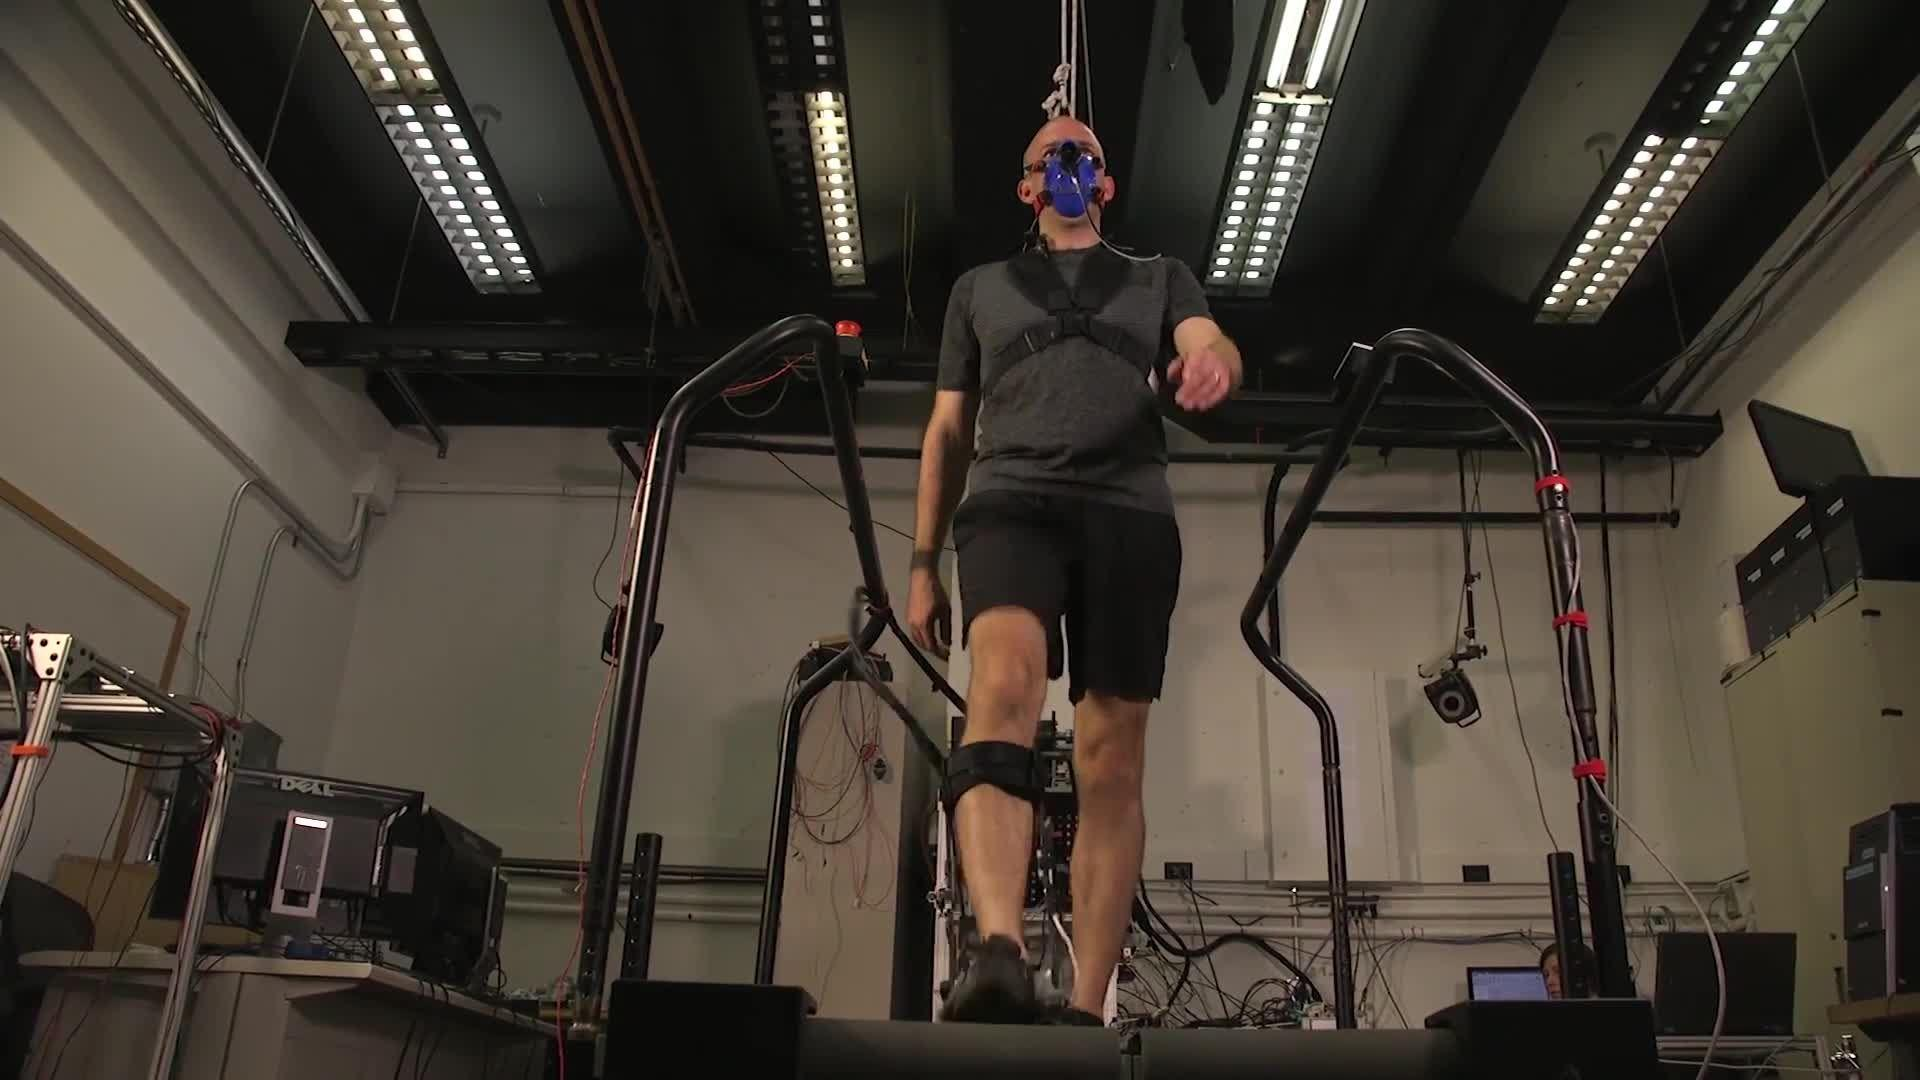 Optimizing an exoskeleton | Ars Technica